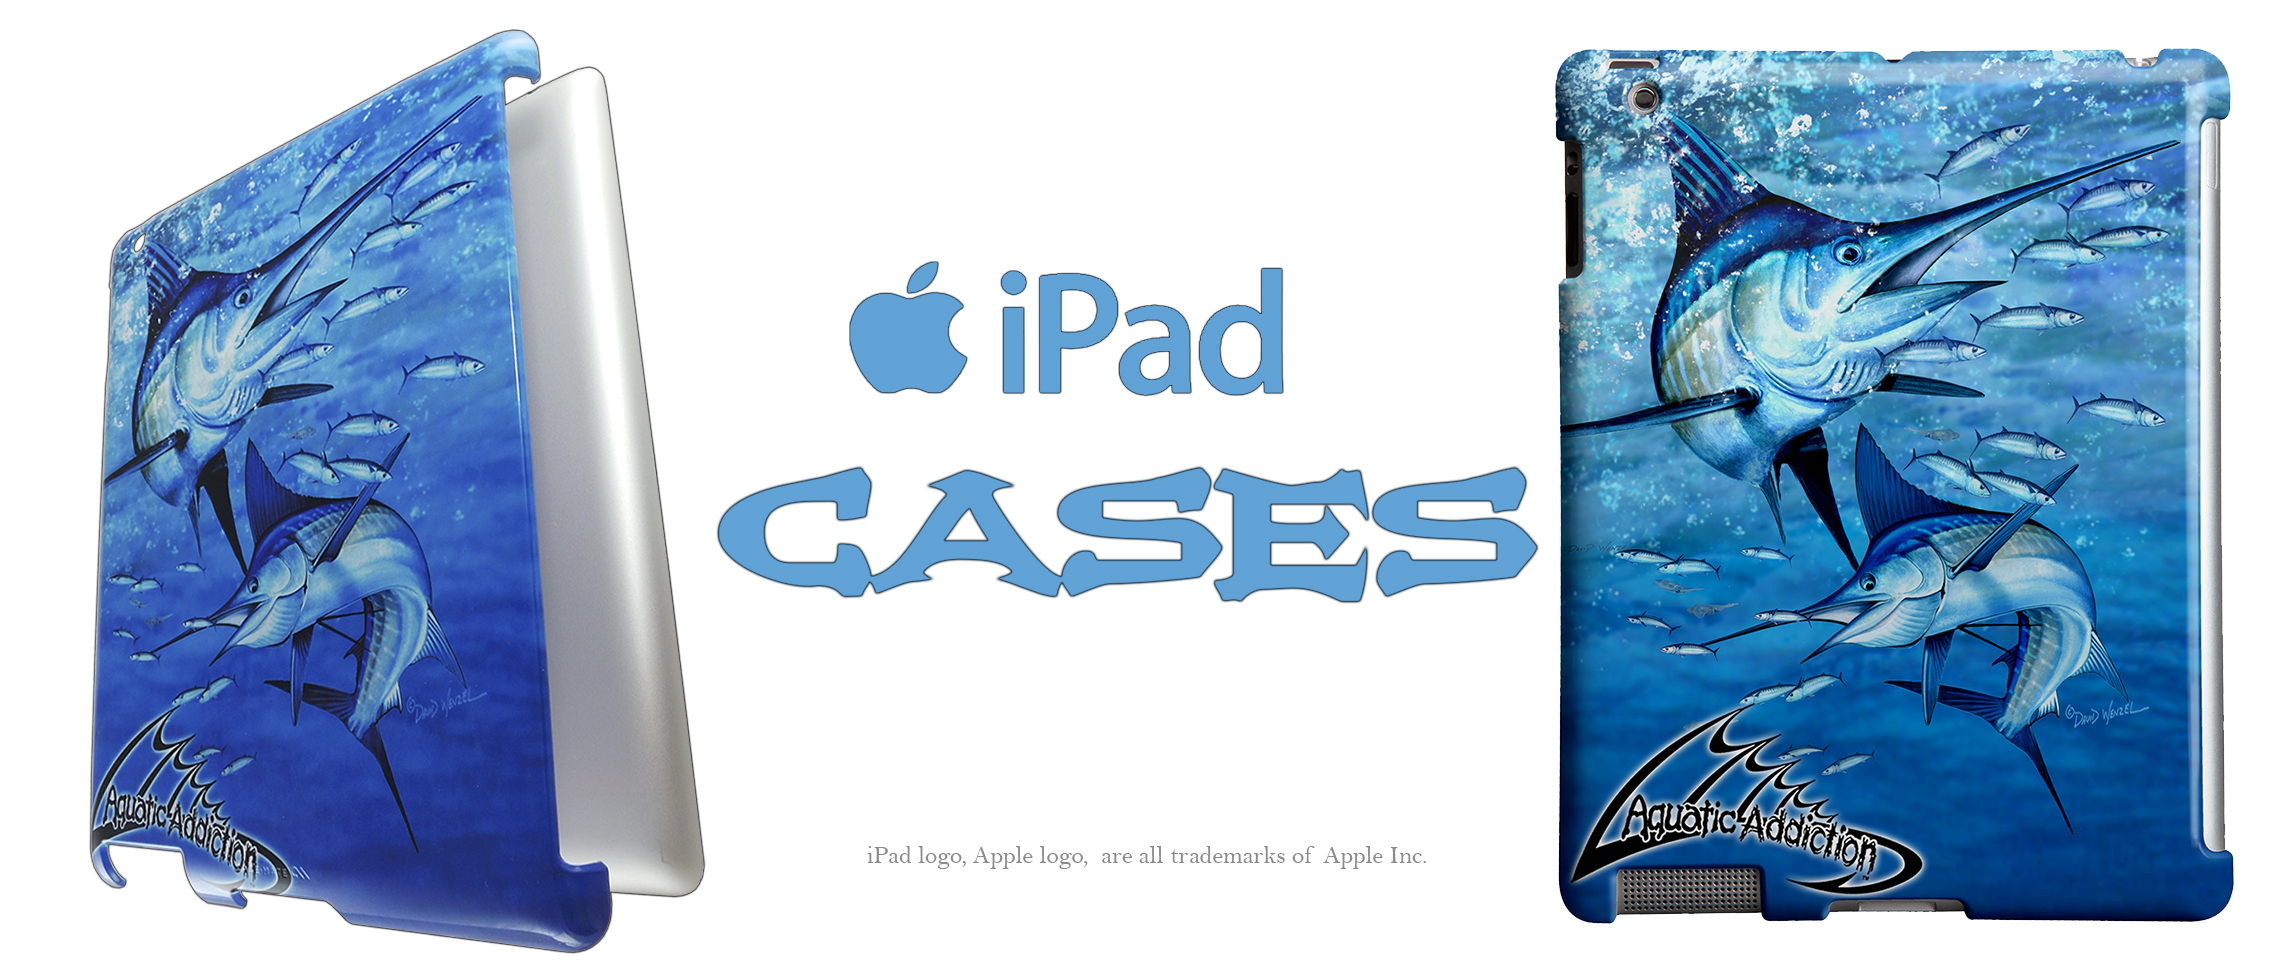 ipad-fish-header.jpg